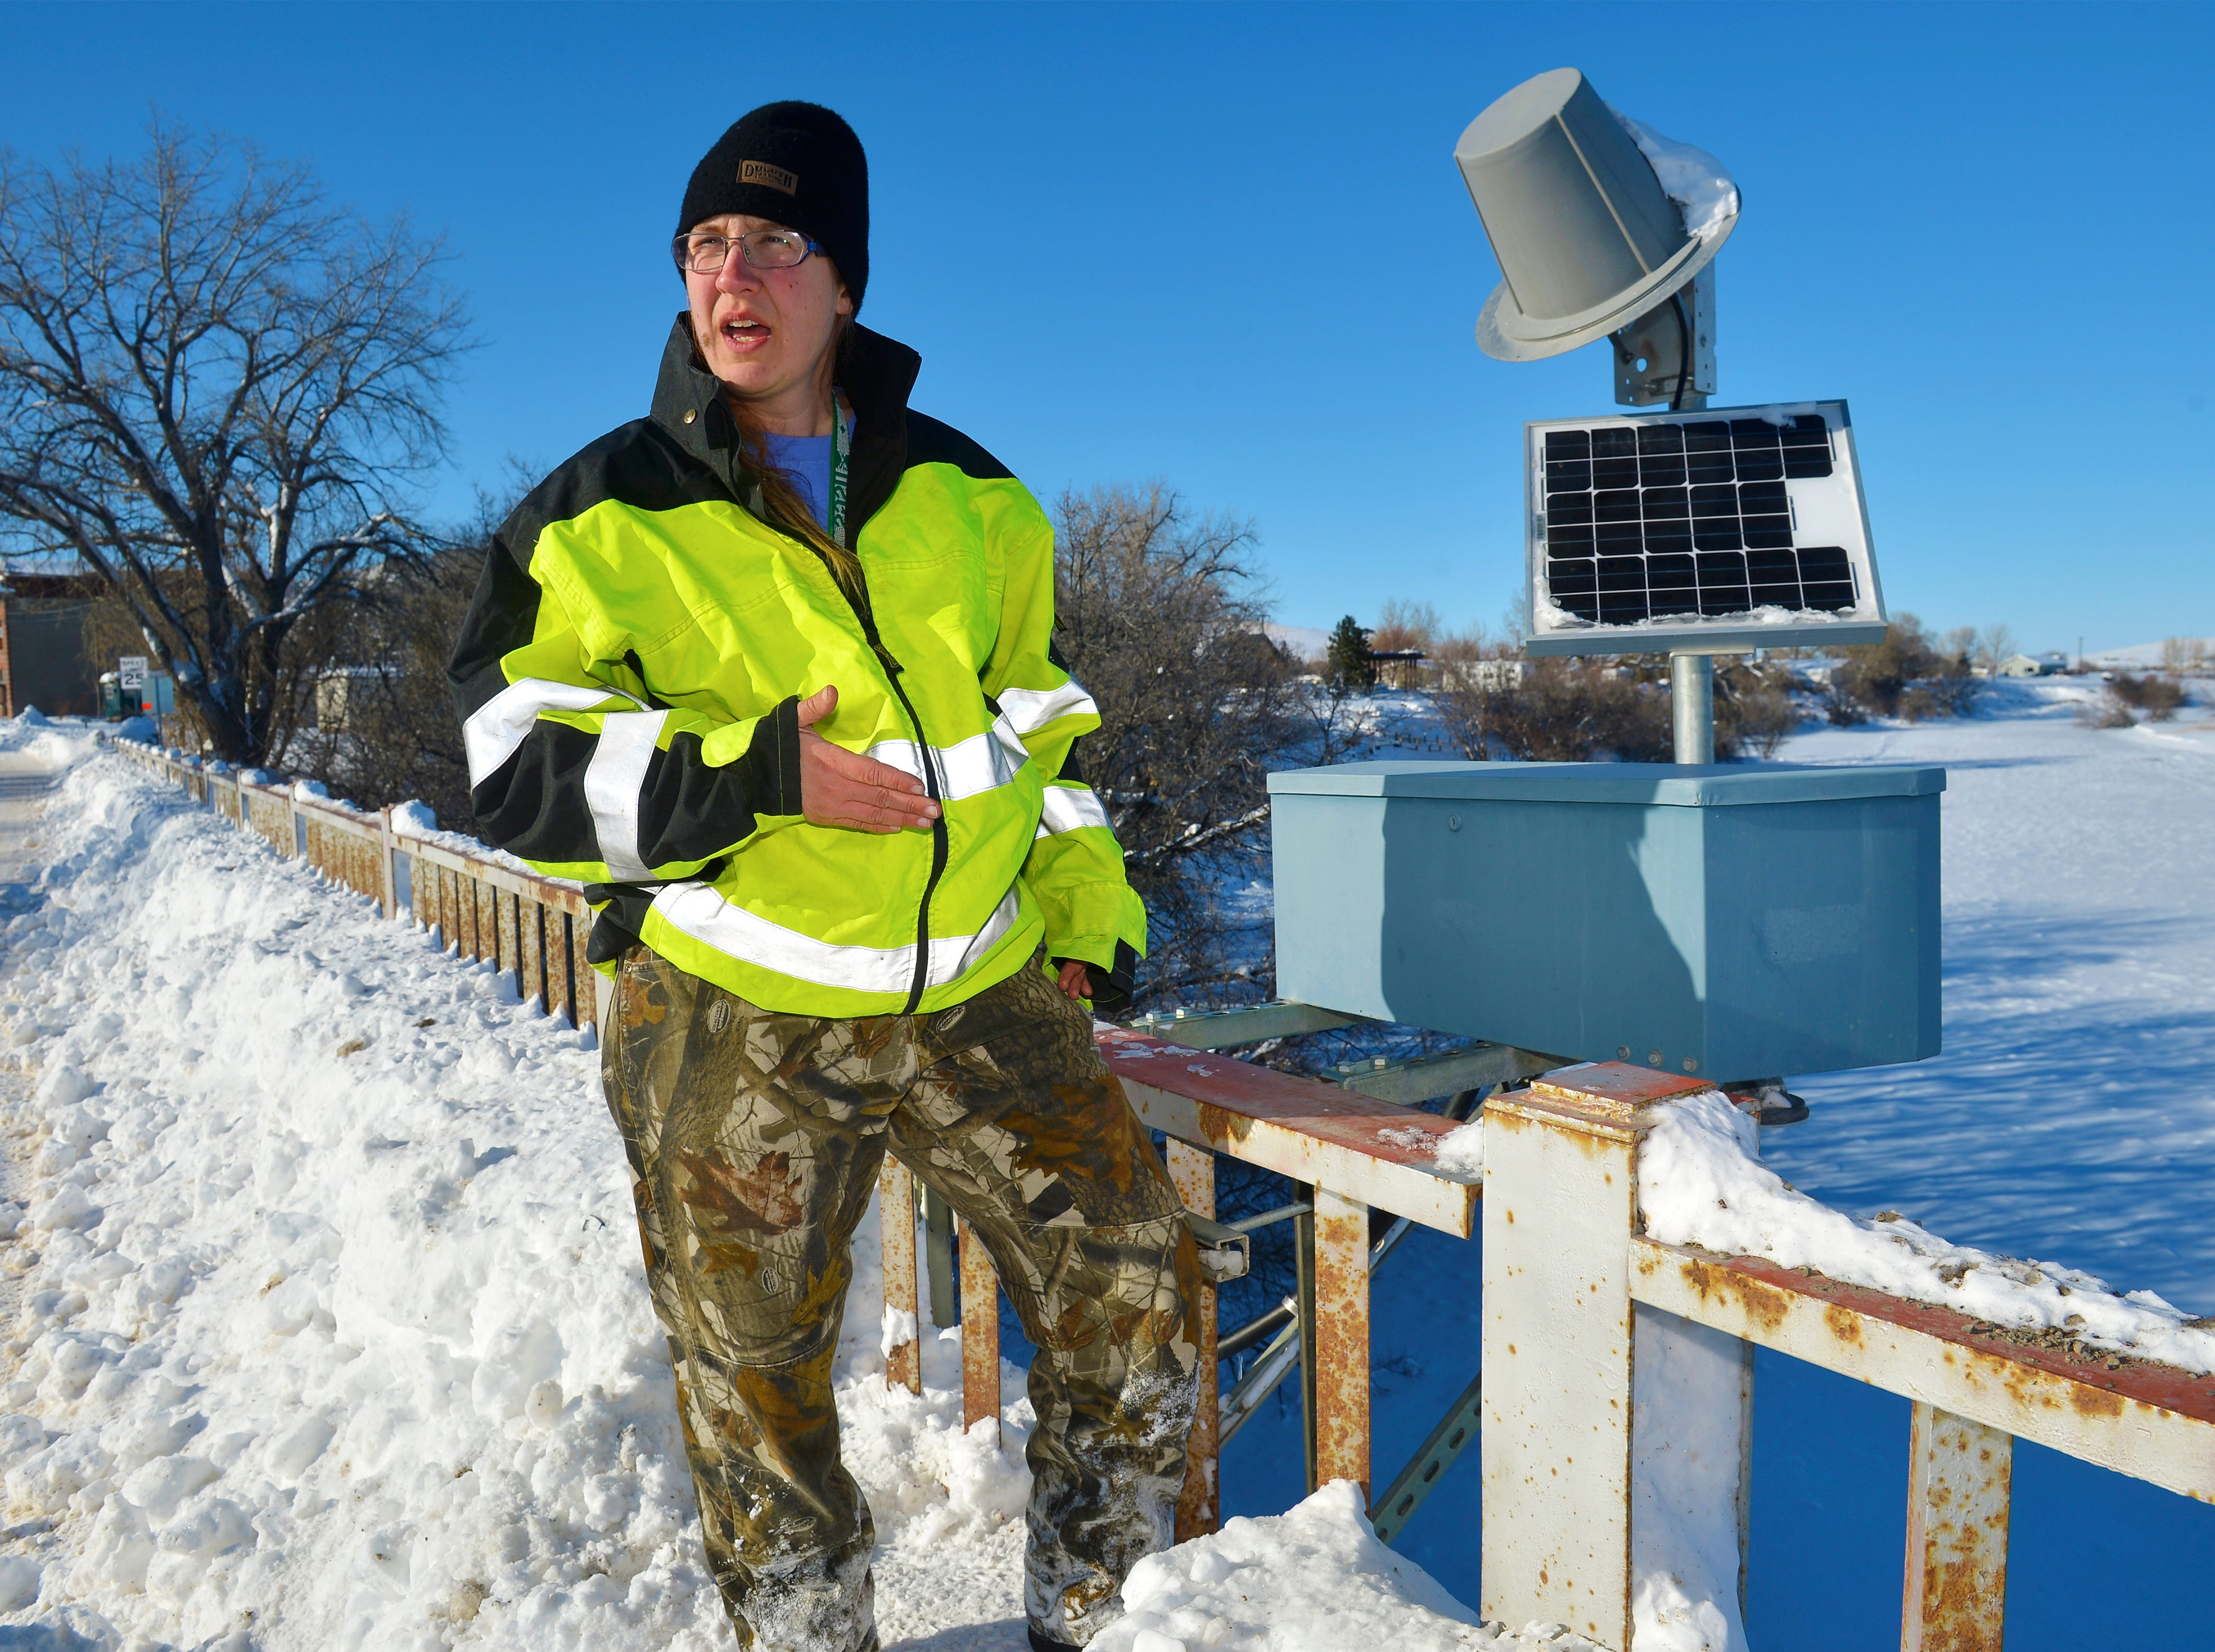 Kim Schierenbeck, a hydrologic technician with the U.S. Geologic Service, makes repairs to a river guage at a bridge on the Missouri River in Cascade on Tuesday afternoon. Ice jams along several miles of the Missouri River has caused minor flooding near Cascade.